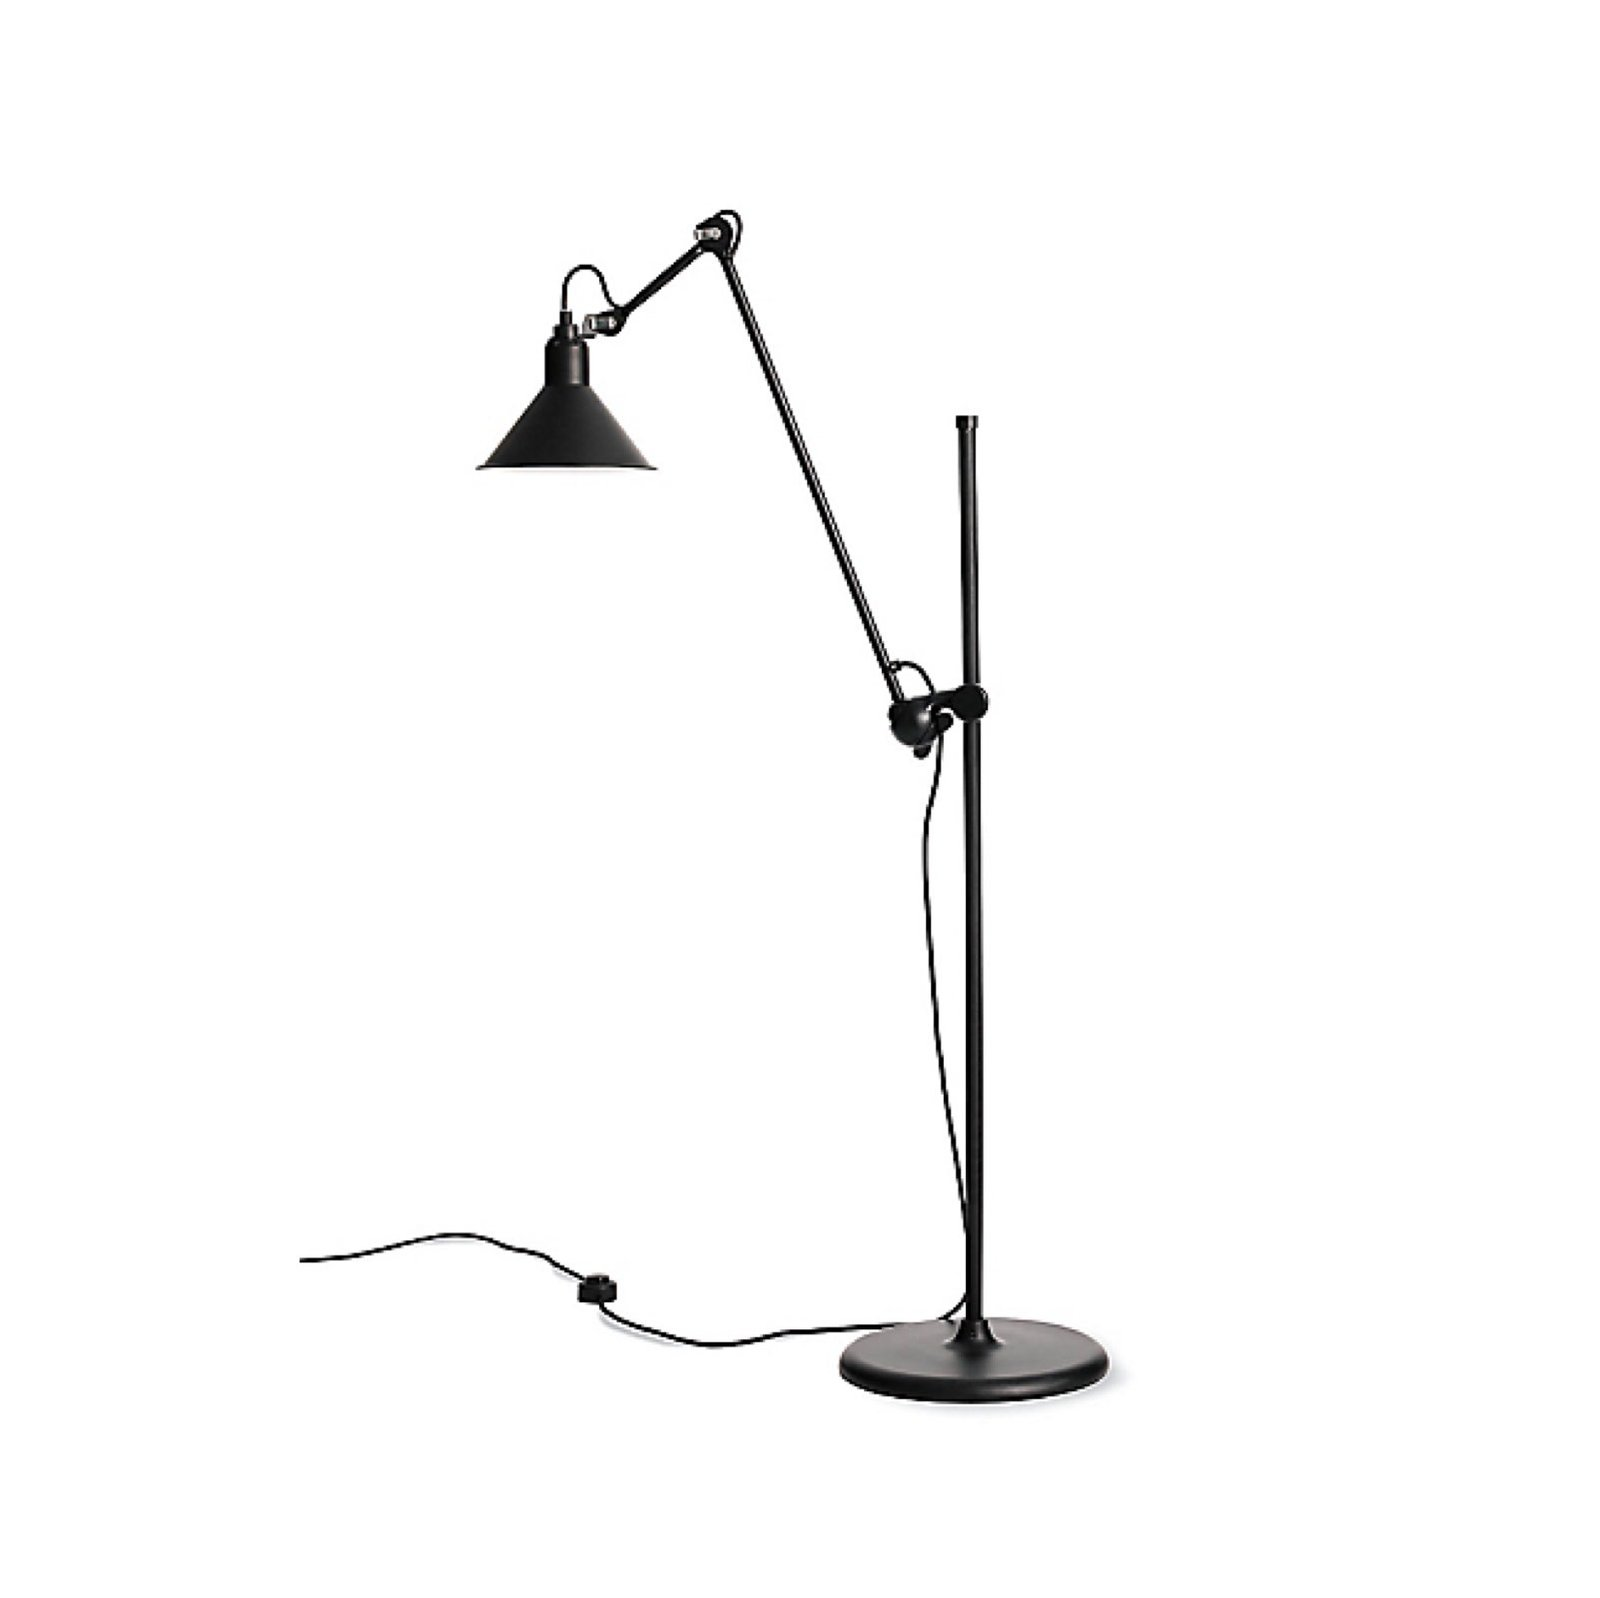 Lampe Gras Lampe Gras Model 215l Floor Lamp By Design Within Reach Dwell